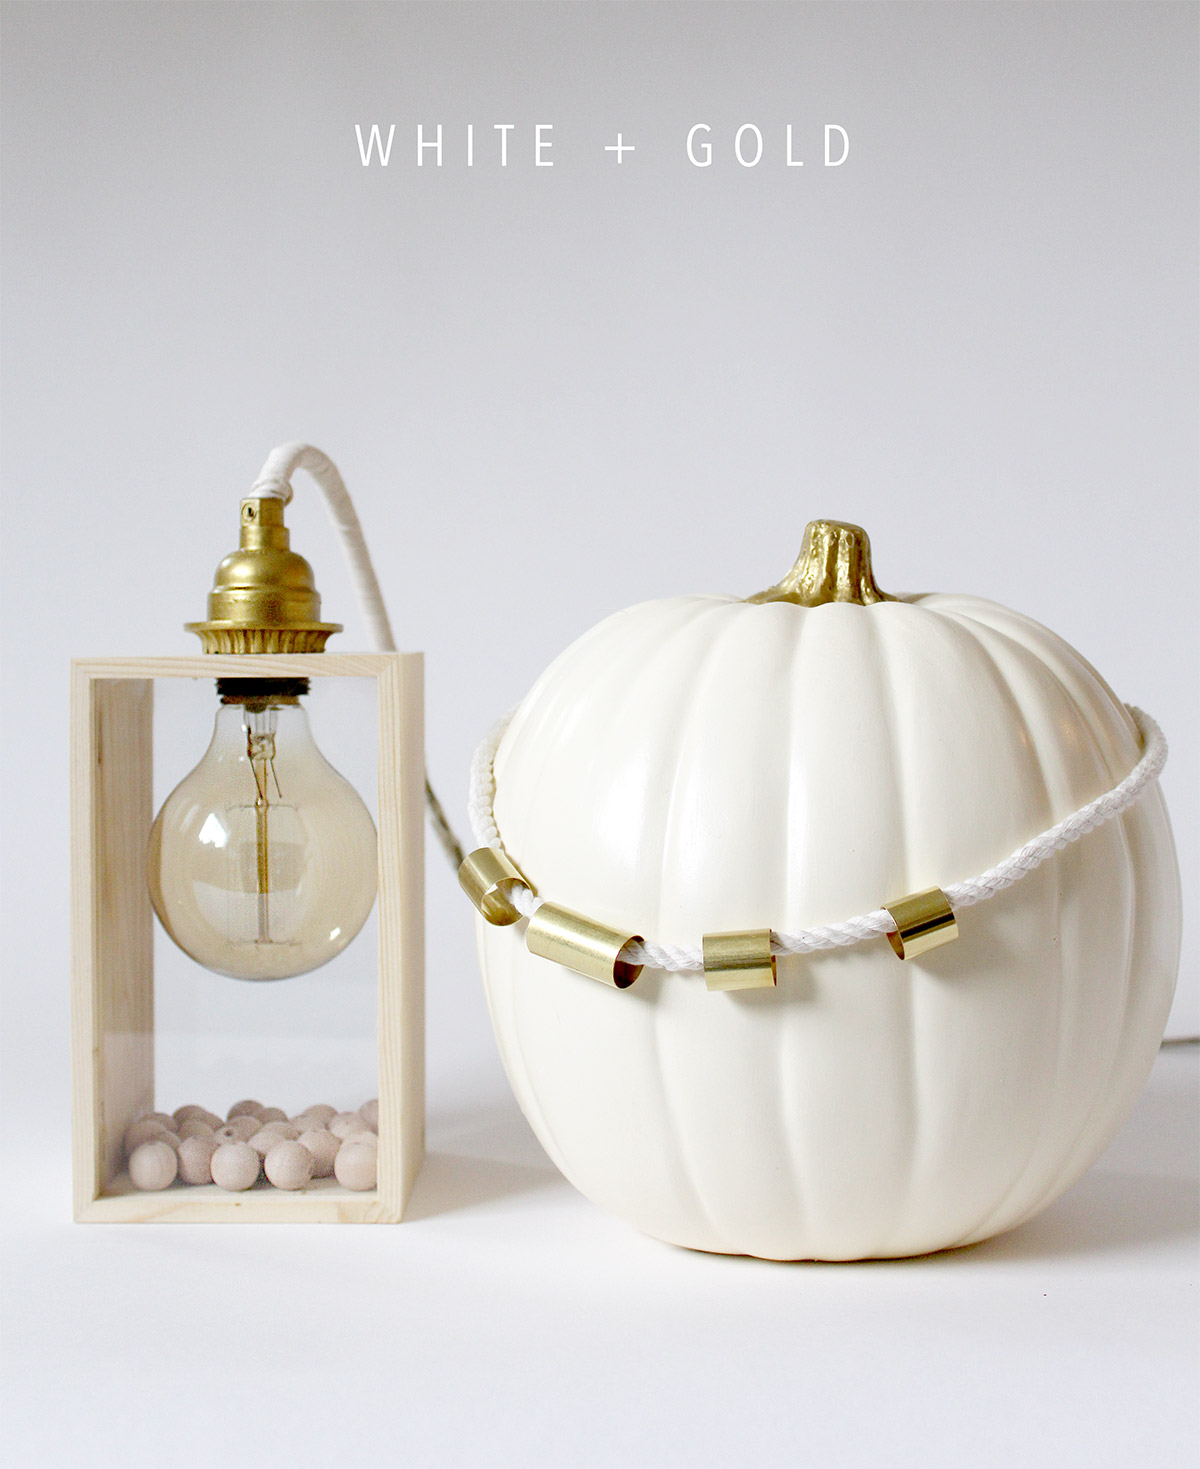 Bring Fall into your home: Fall Vignette DIY